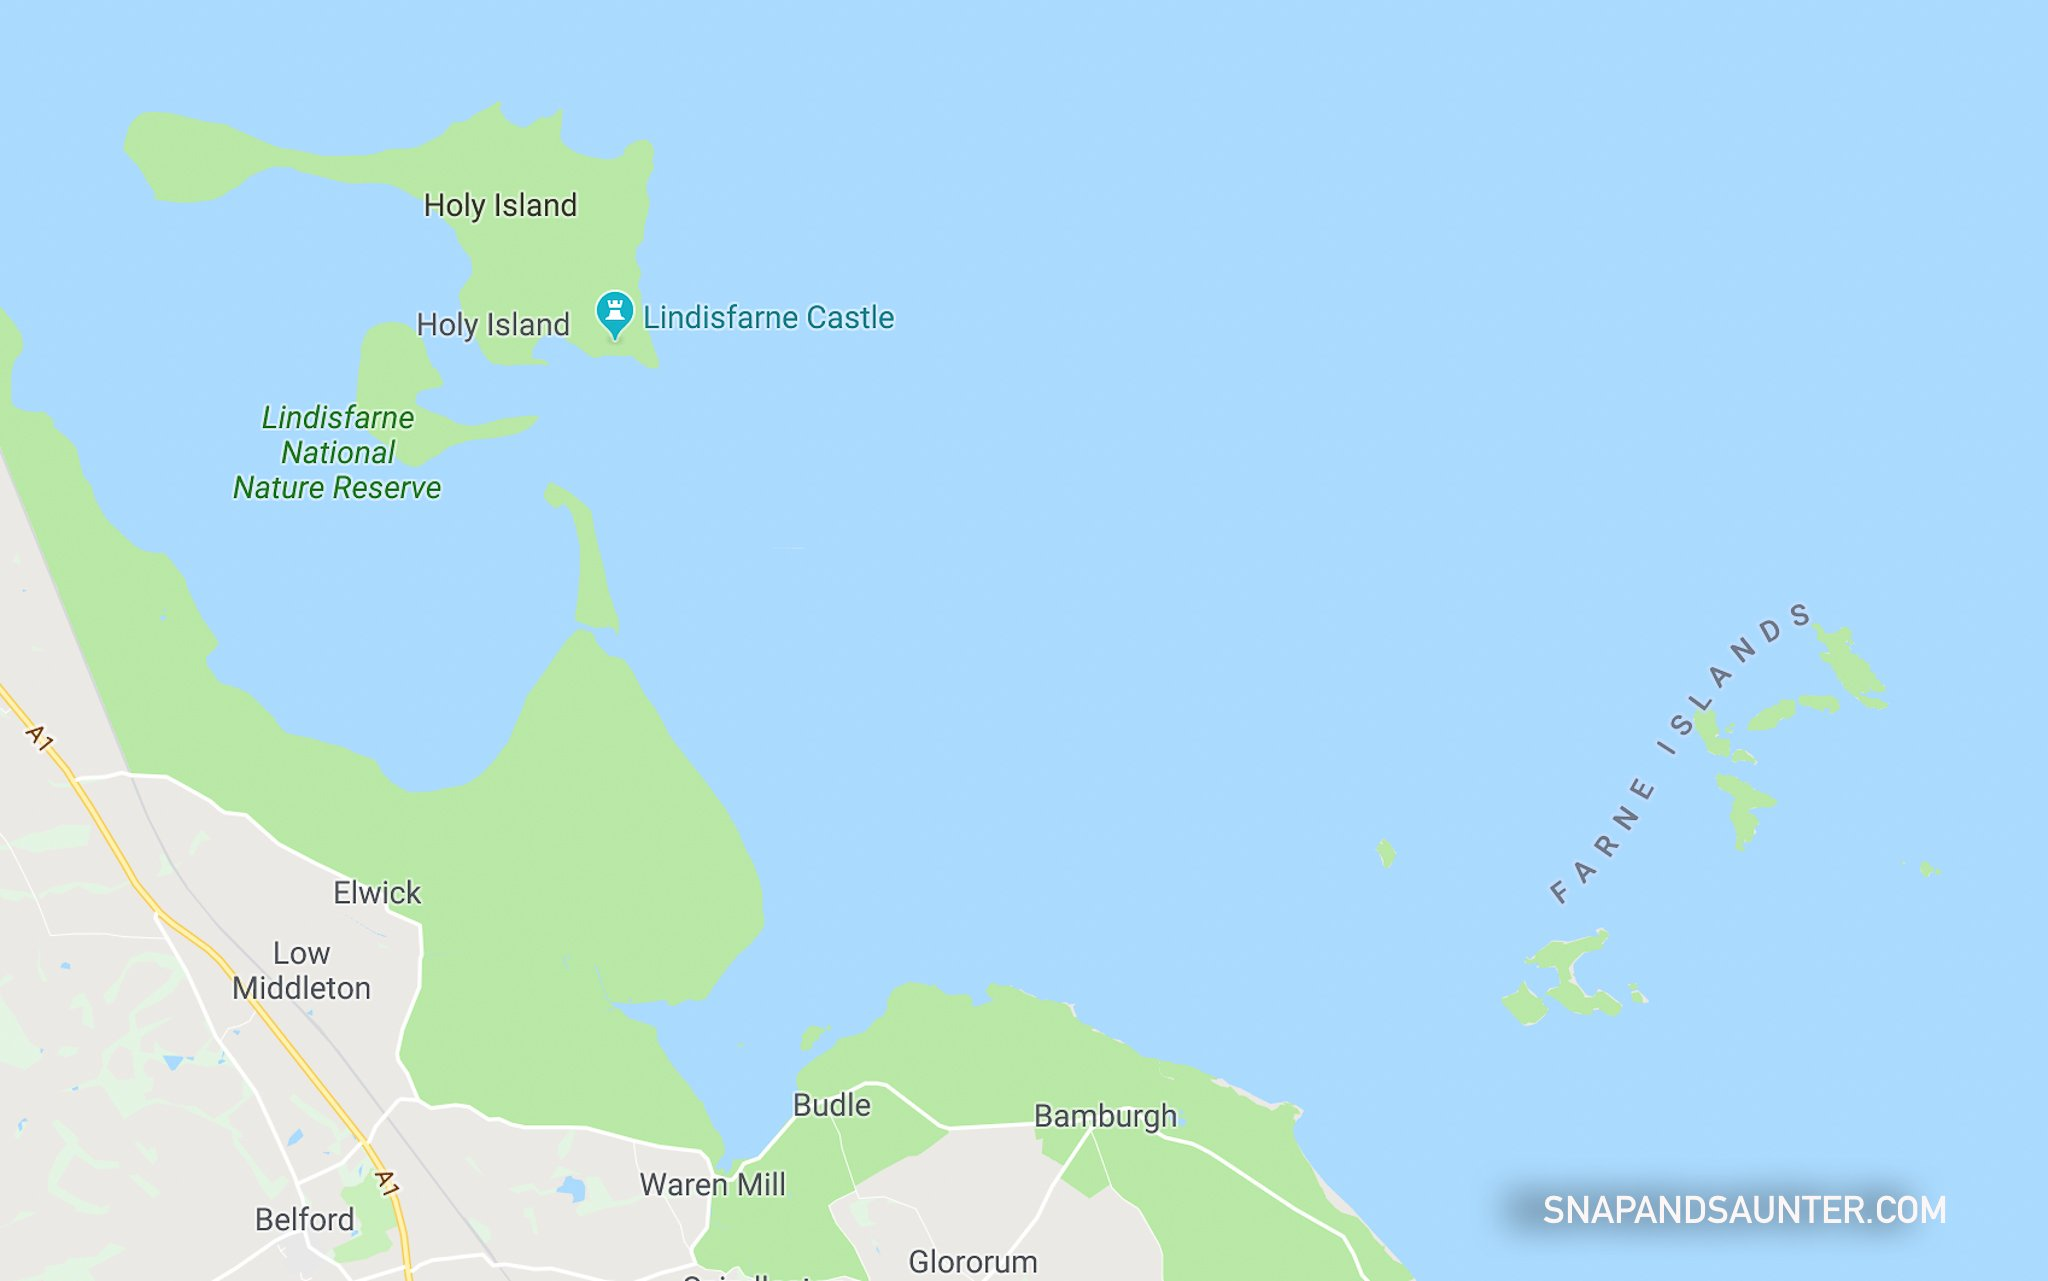 google map showing Farne Islands and Lindisfarne Island